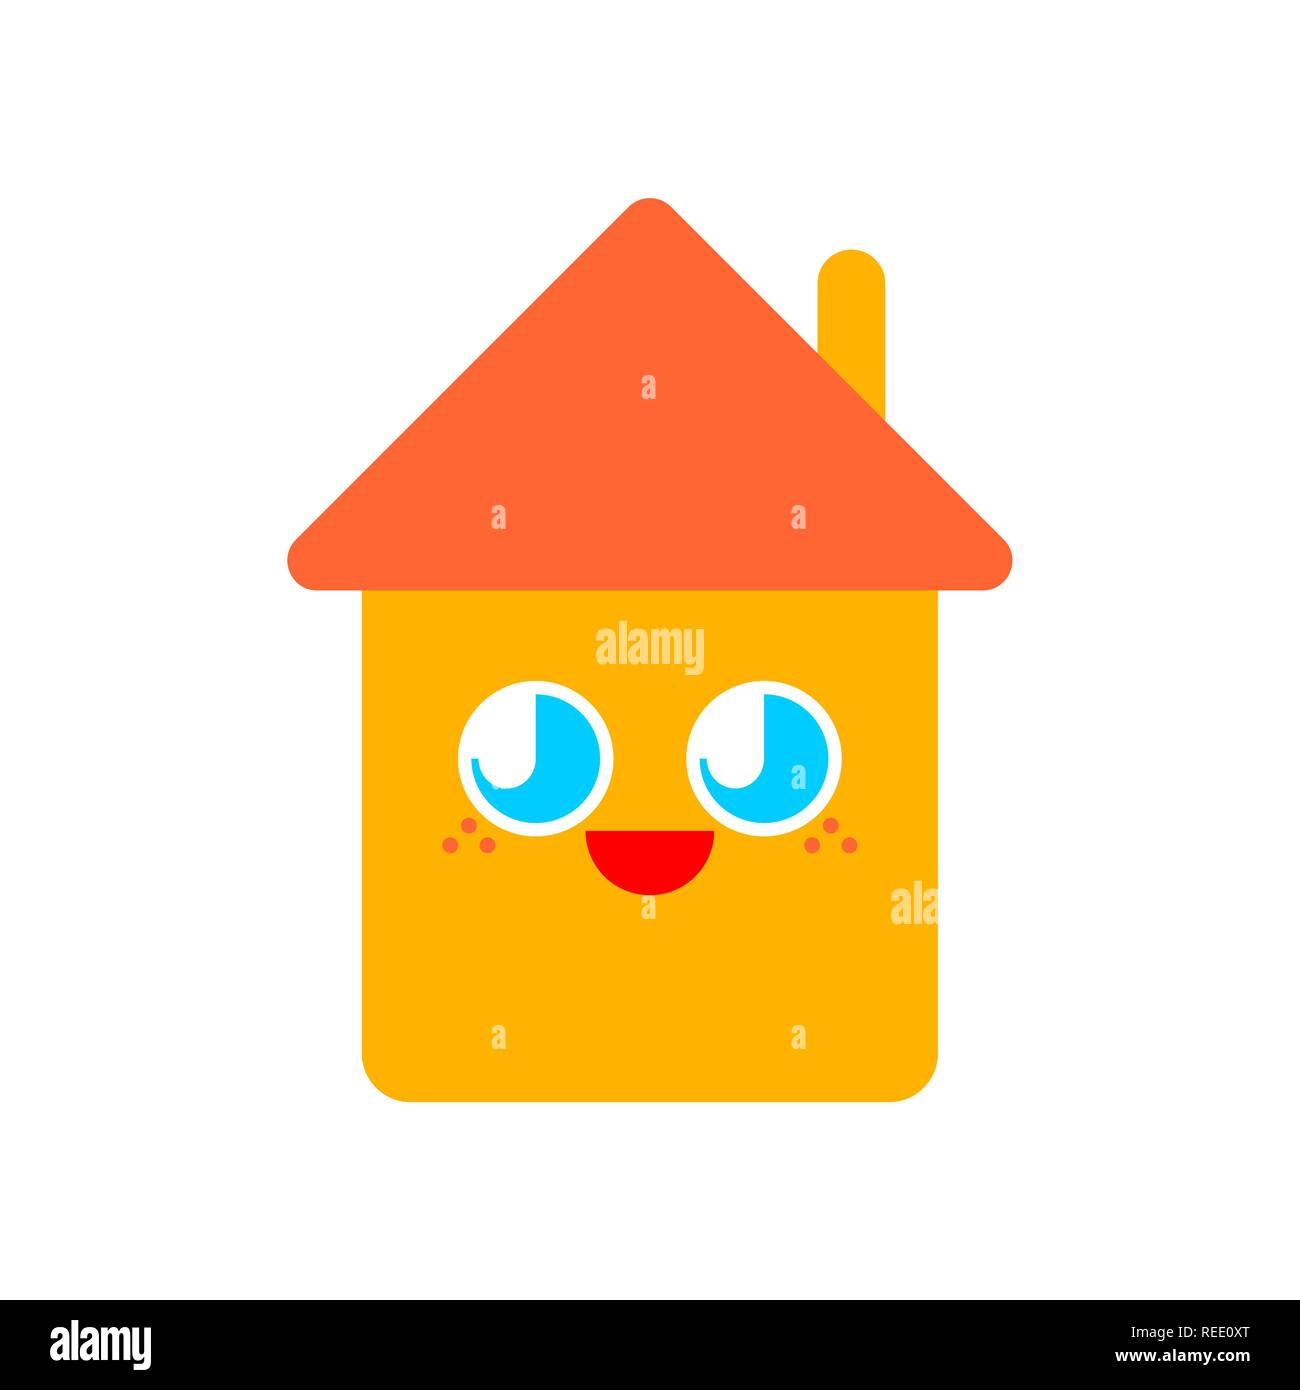 Cute House Mouth And Eyes Isolated Funny Home Cartoon Style Kids